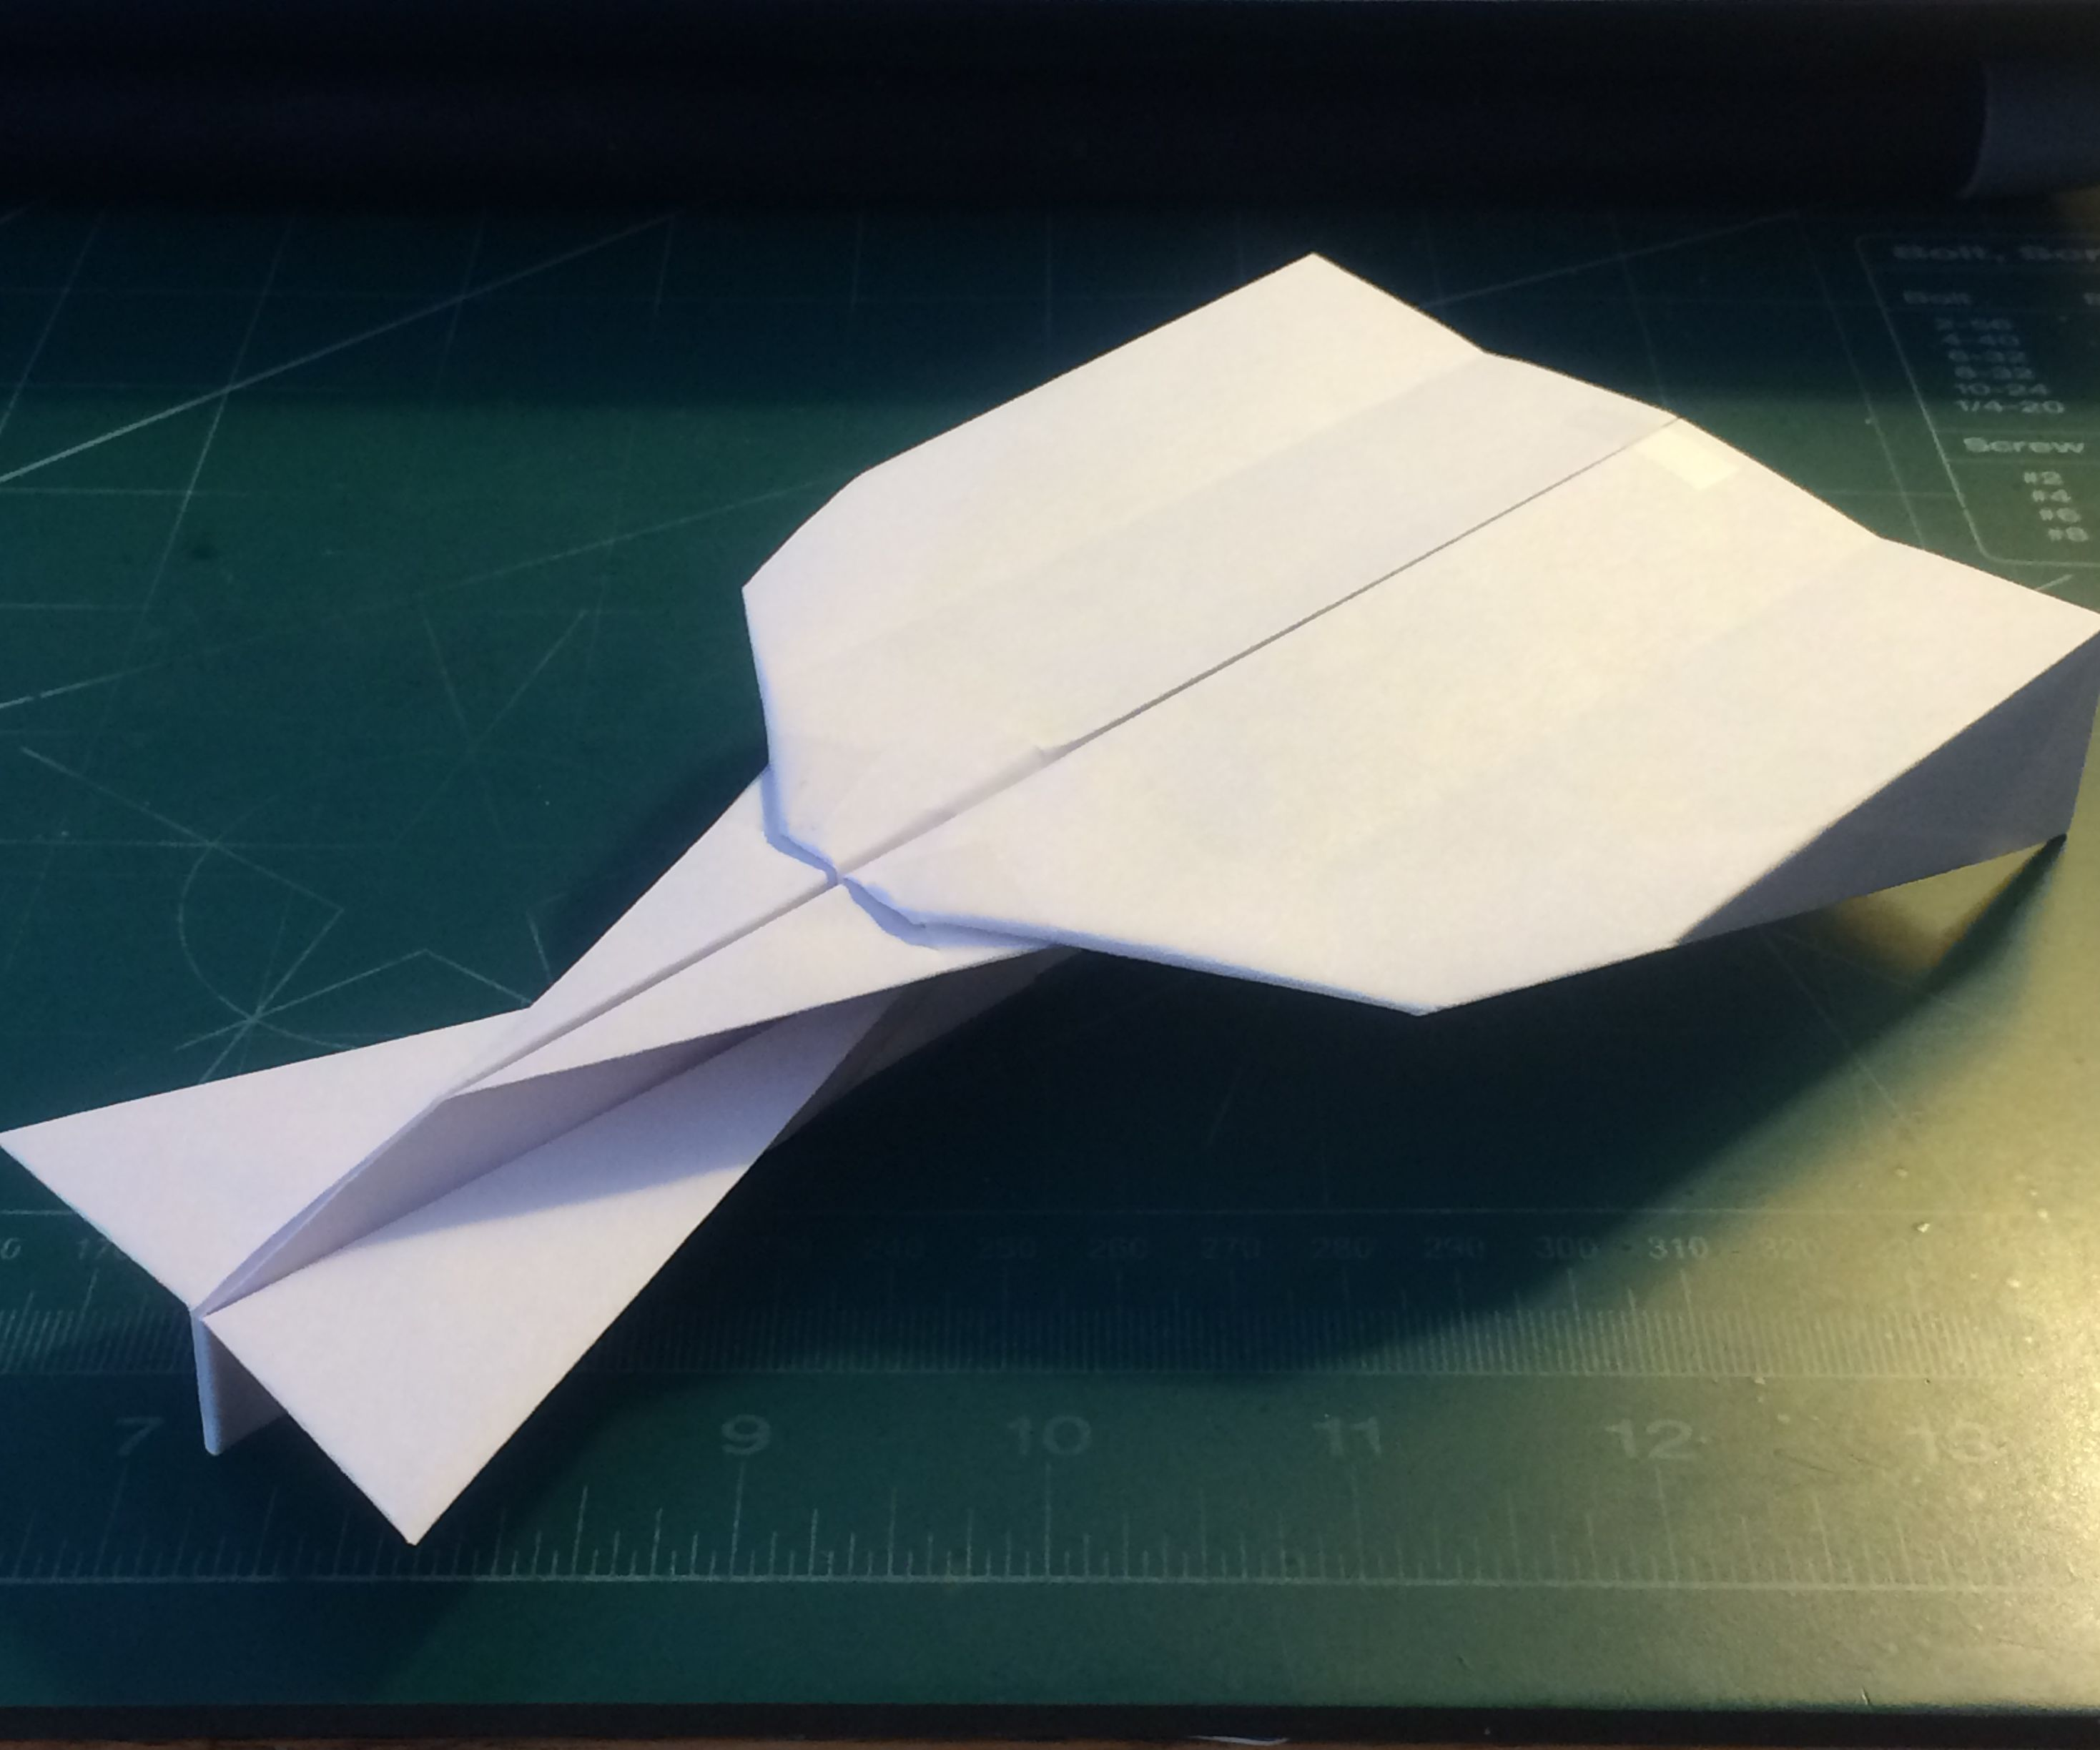 How To Make The UltraStratoVulcan Paper Airplane